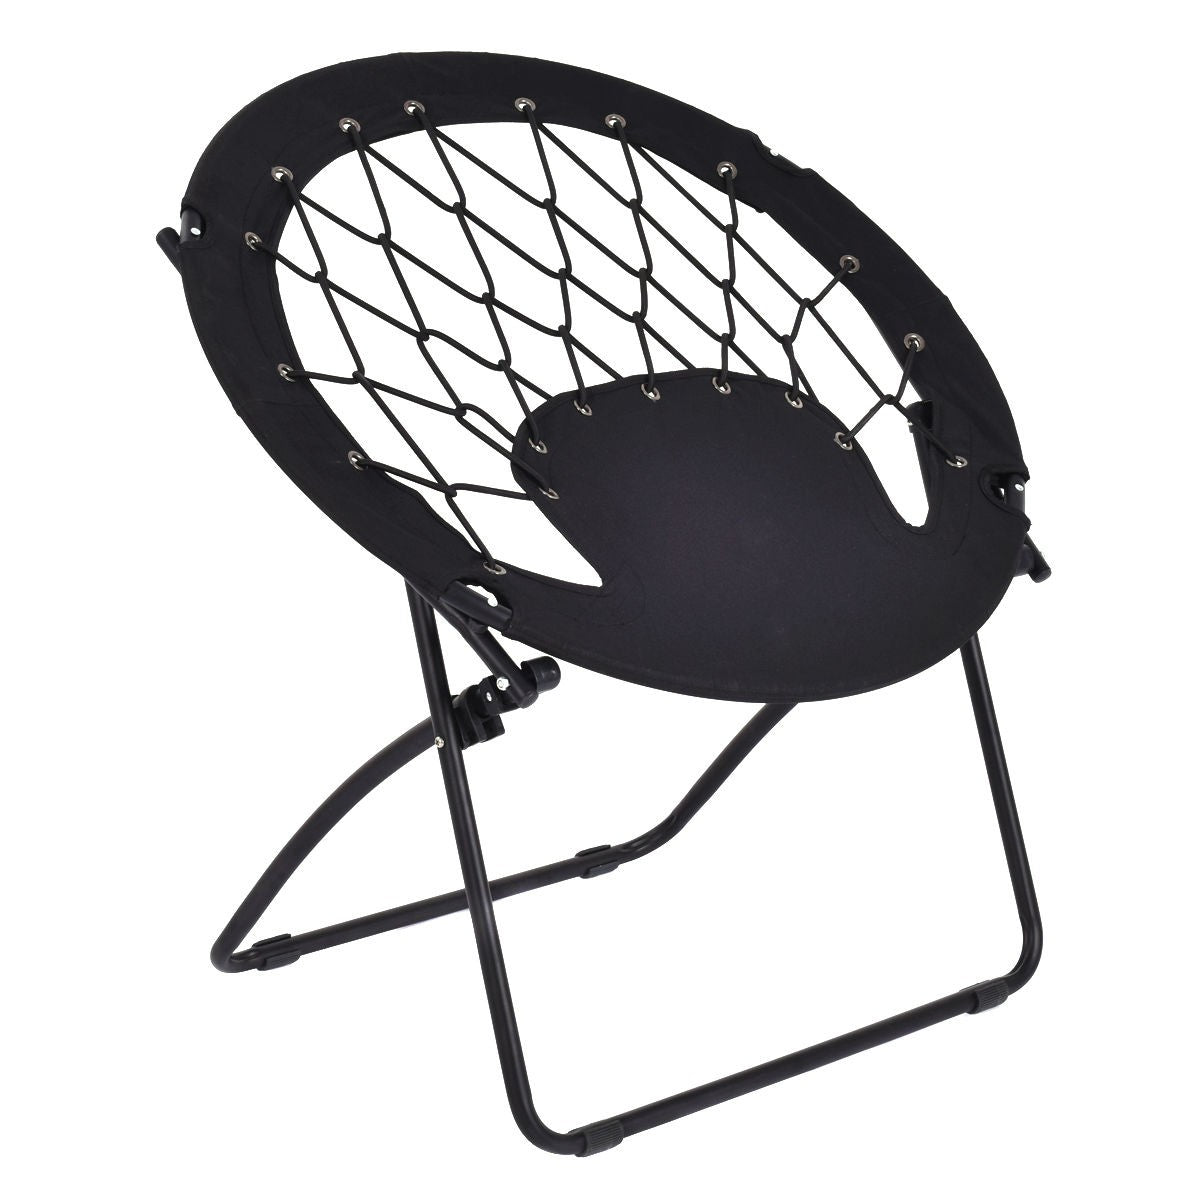 Folding Round Bungee Chair Steel Frame Outdoor Camping Hiking Garden Patio-Black